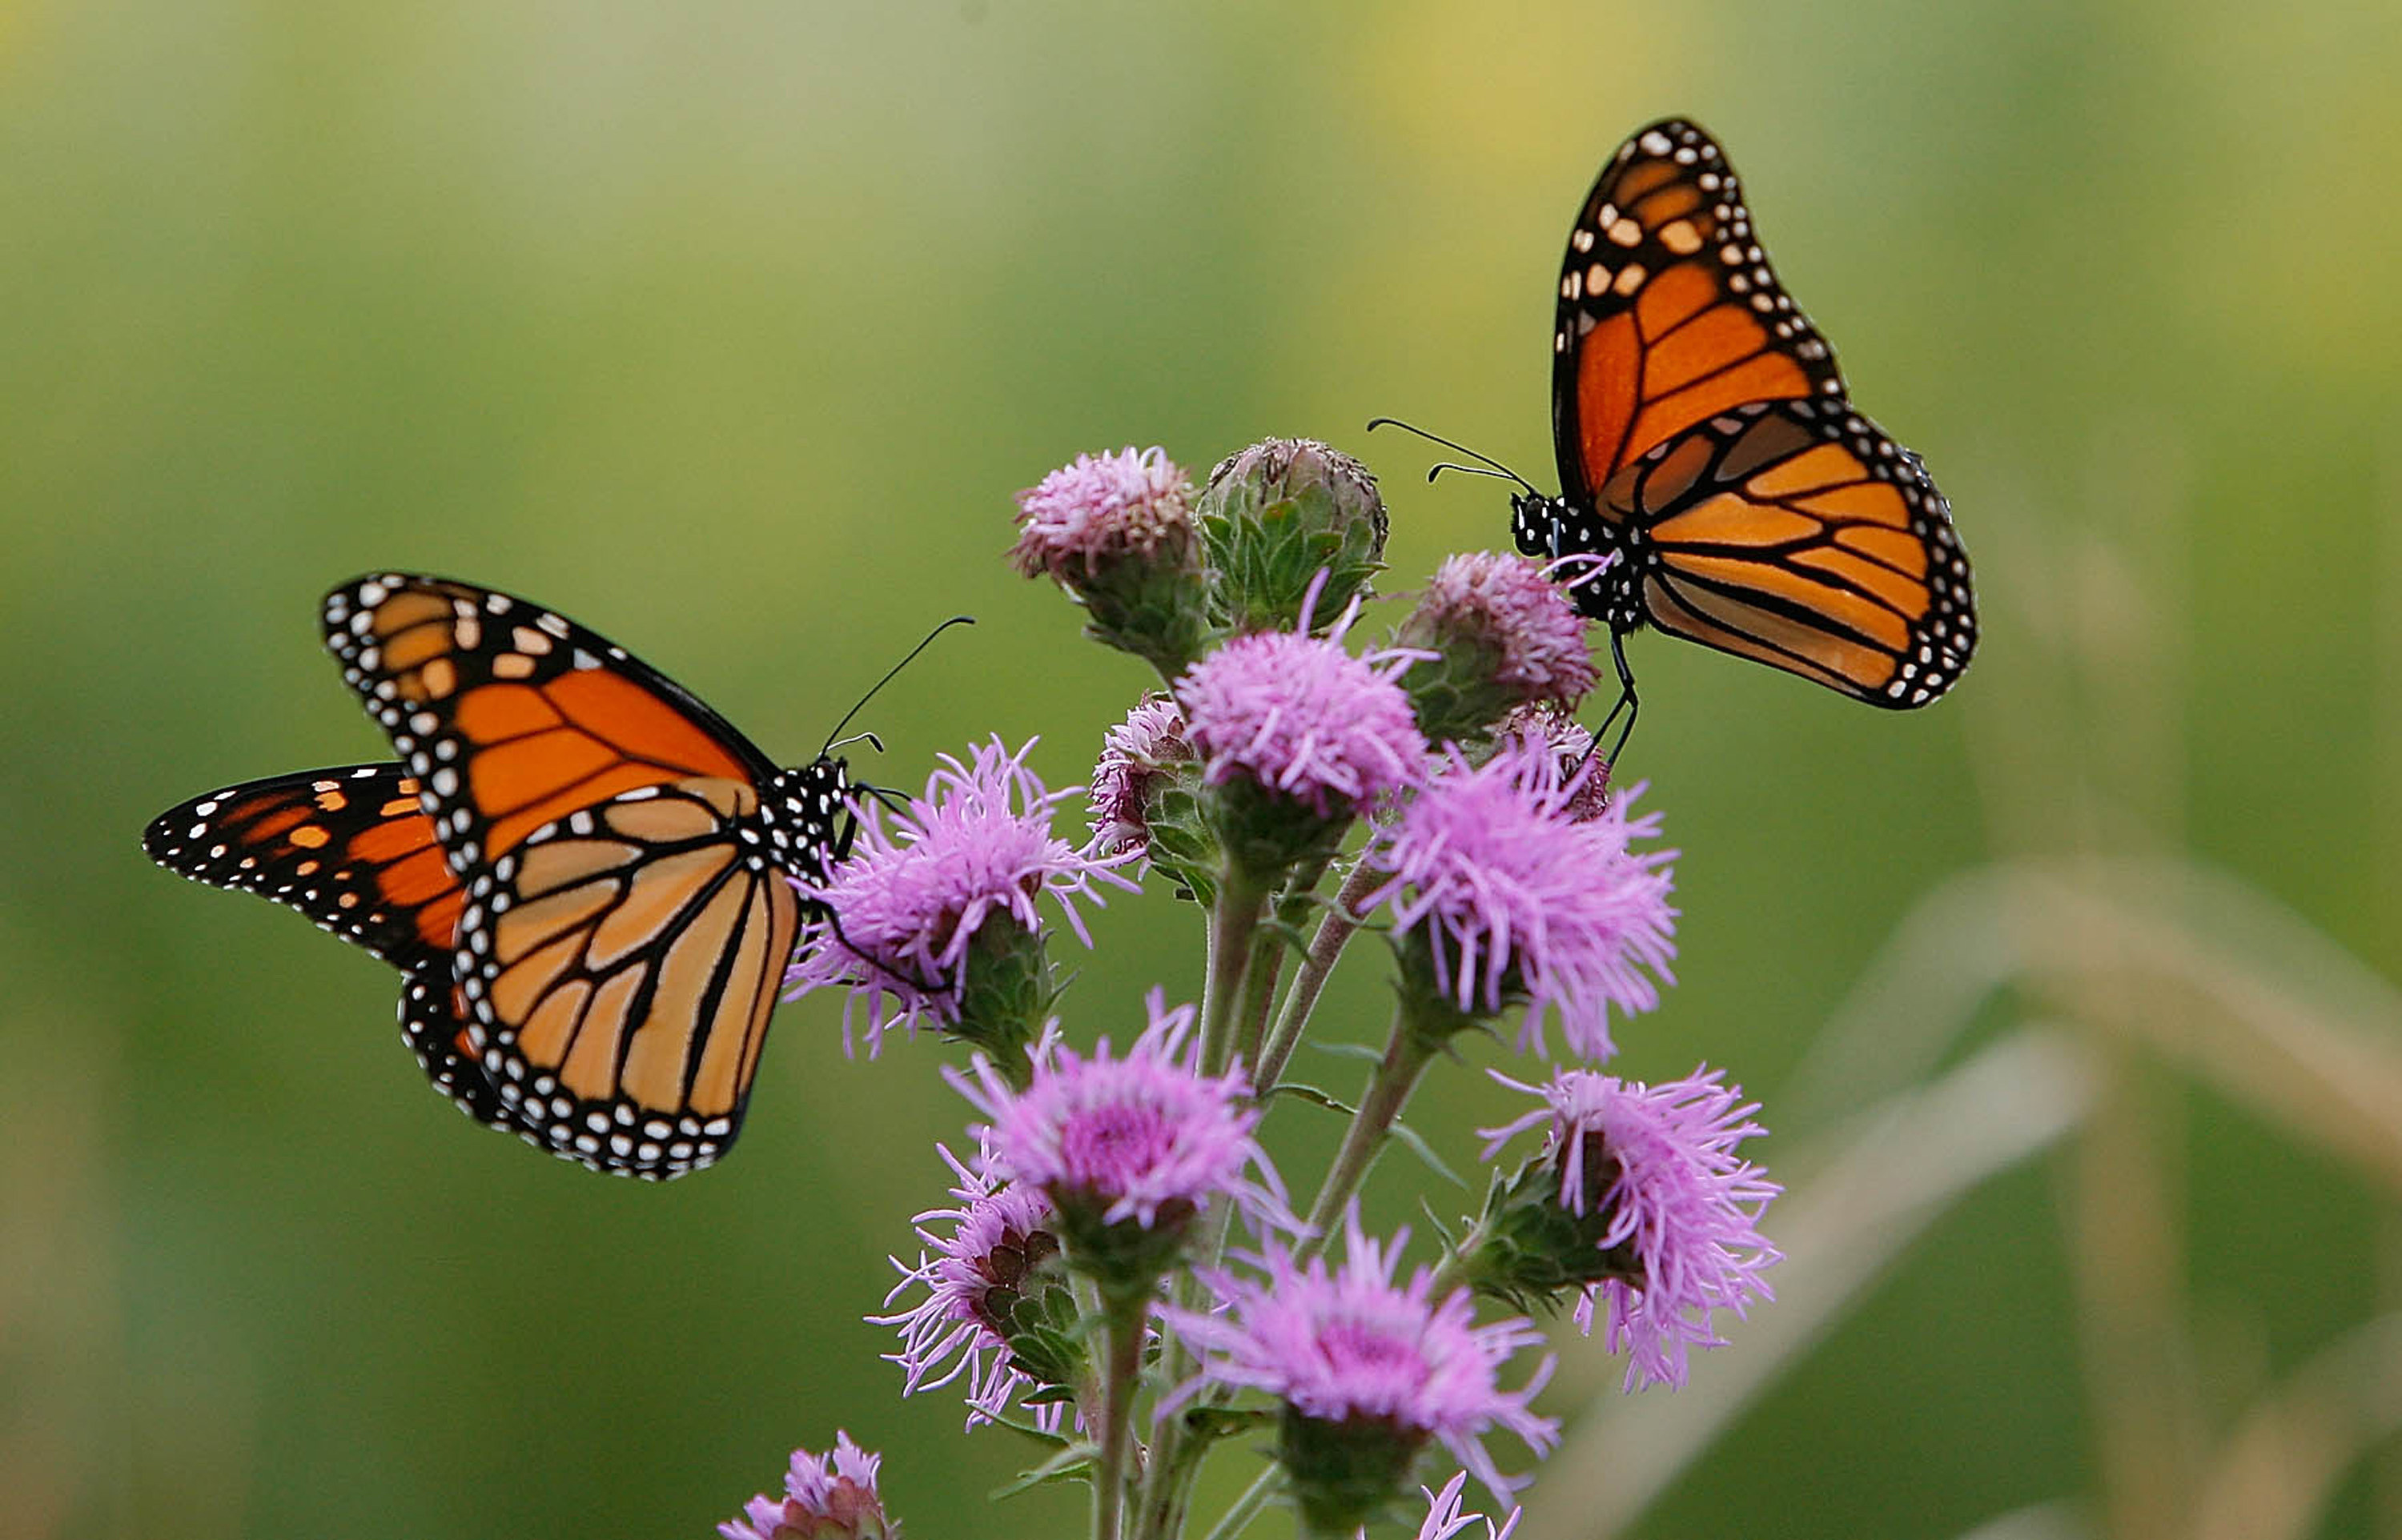 Close up photo of two butterflies on a purple flower